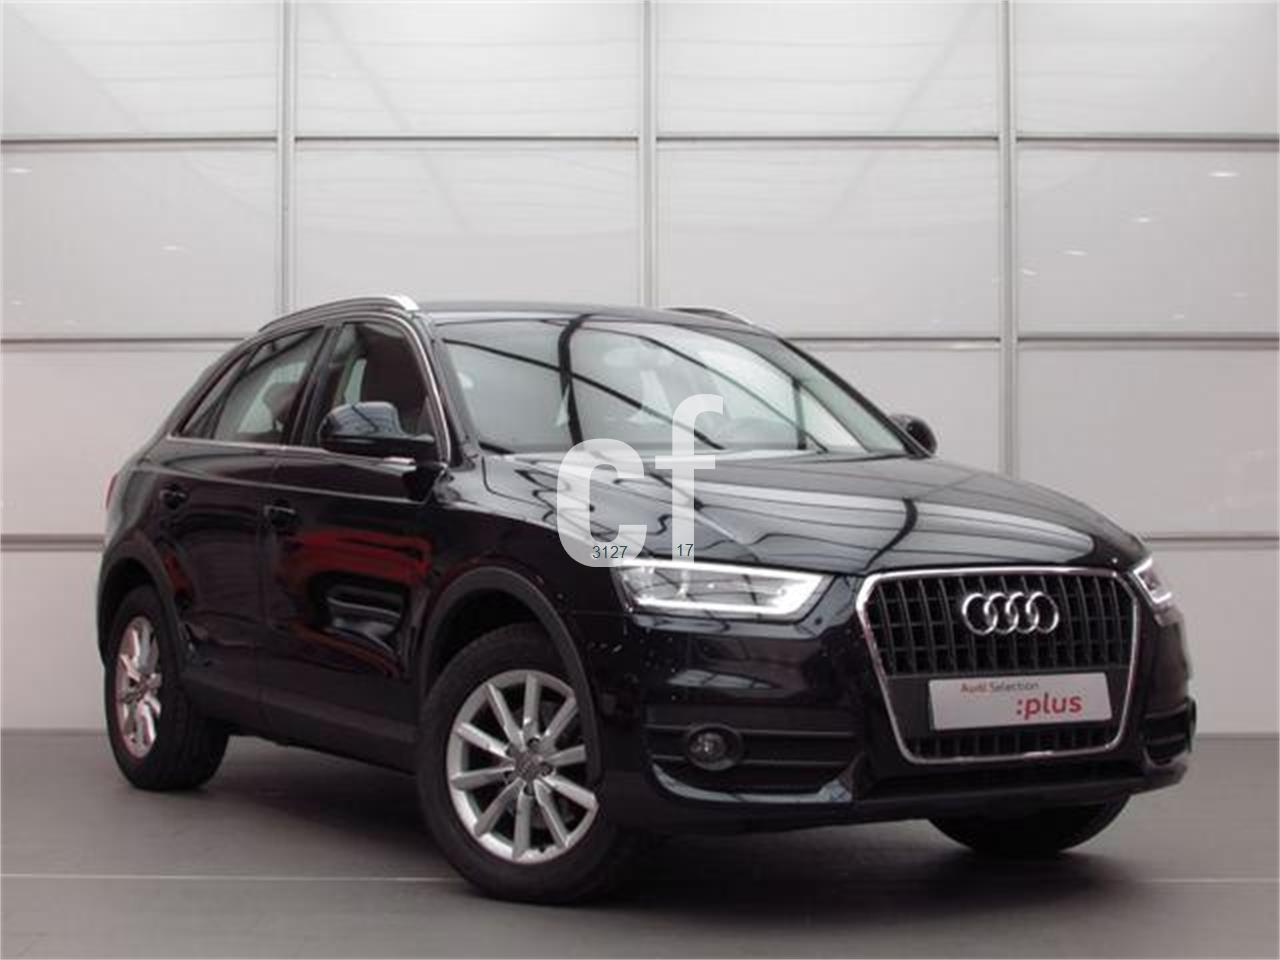 voitures audi q3 occasion espagne. Black Bedroom Furniture Sets. Home Design Ideas